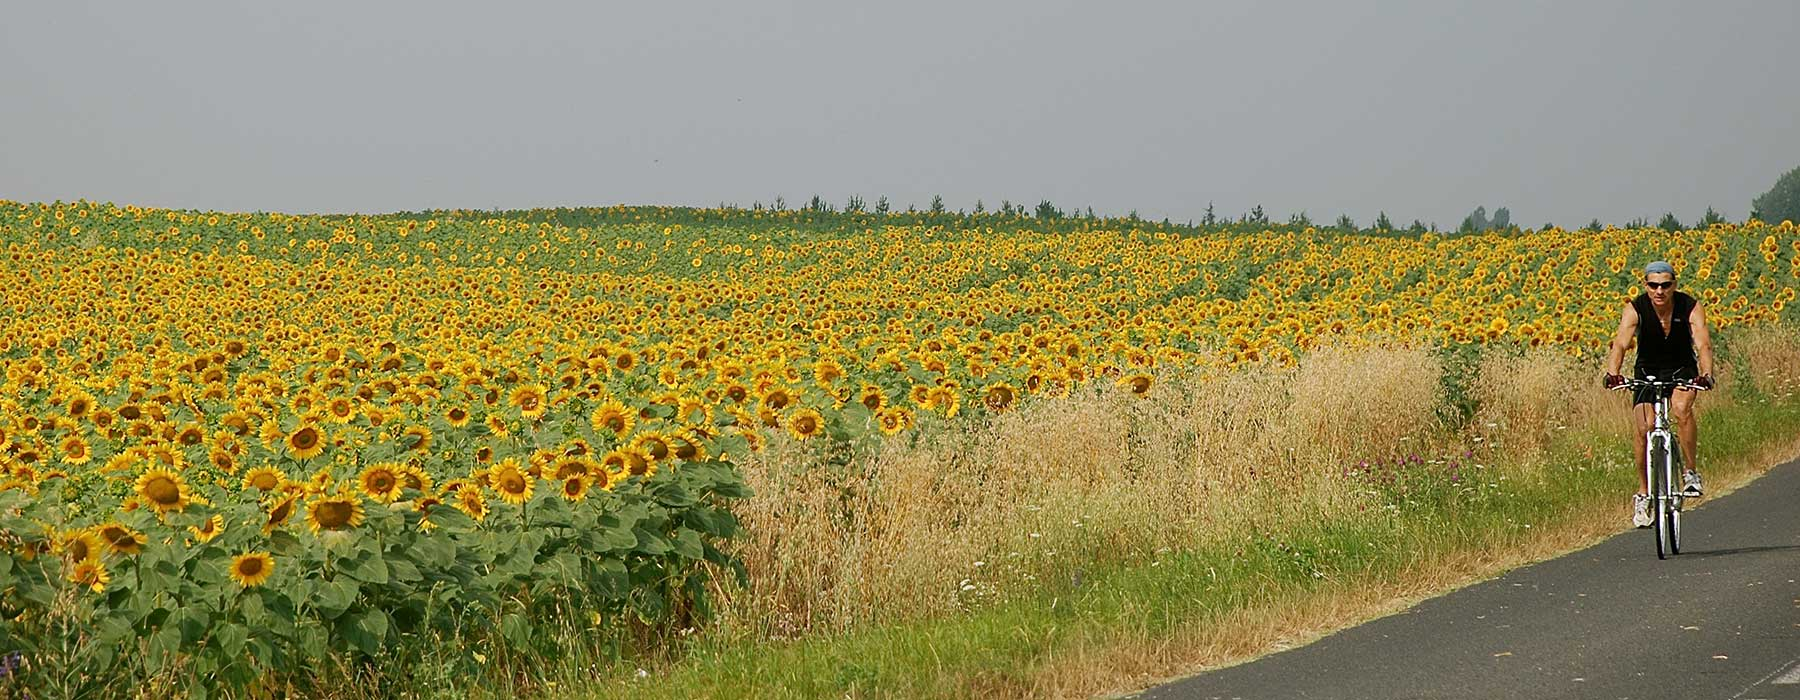 Sunflowers_camping-dordogne